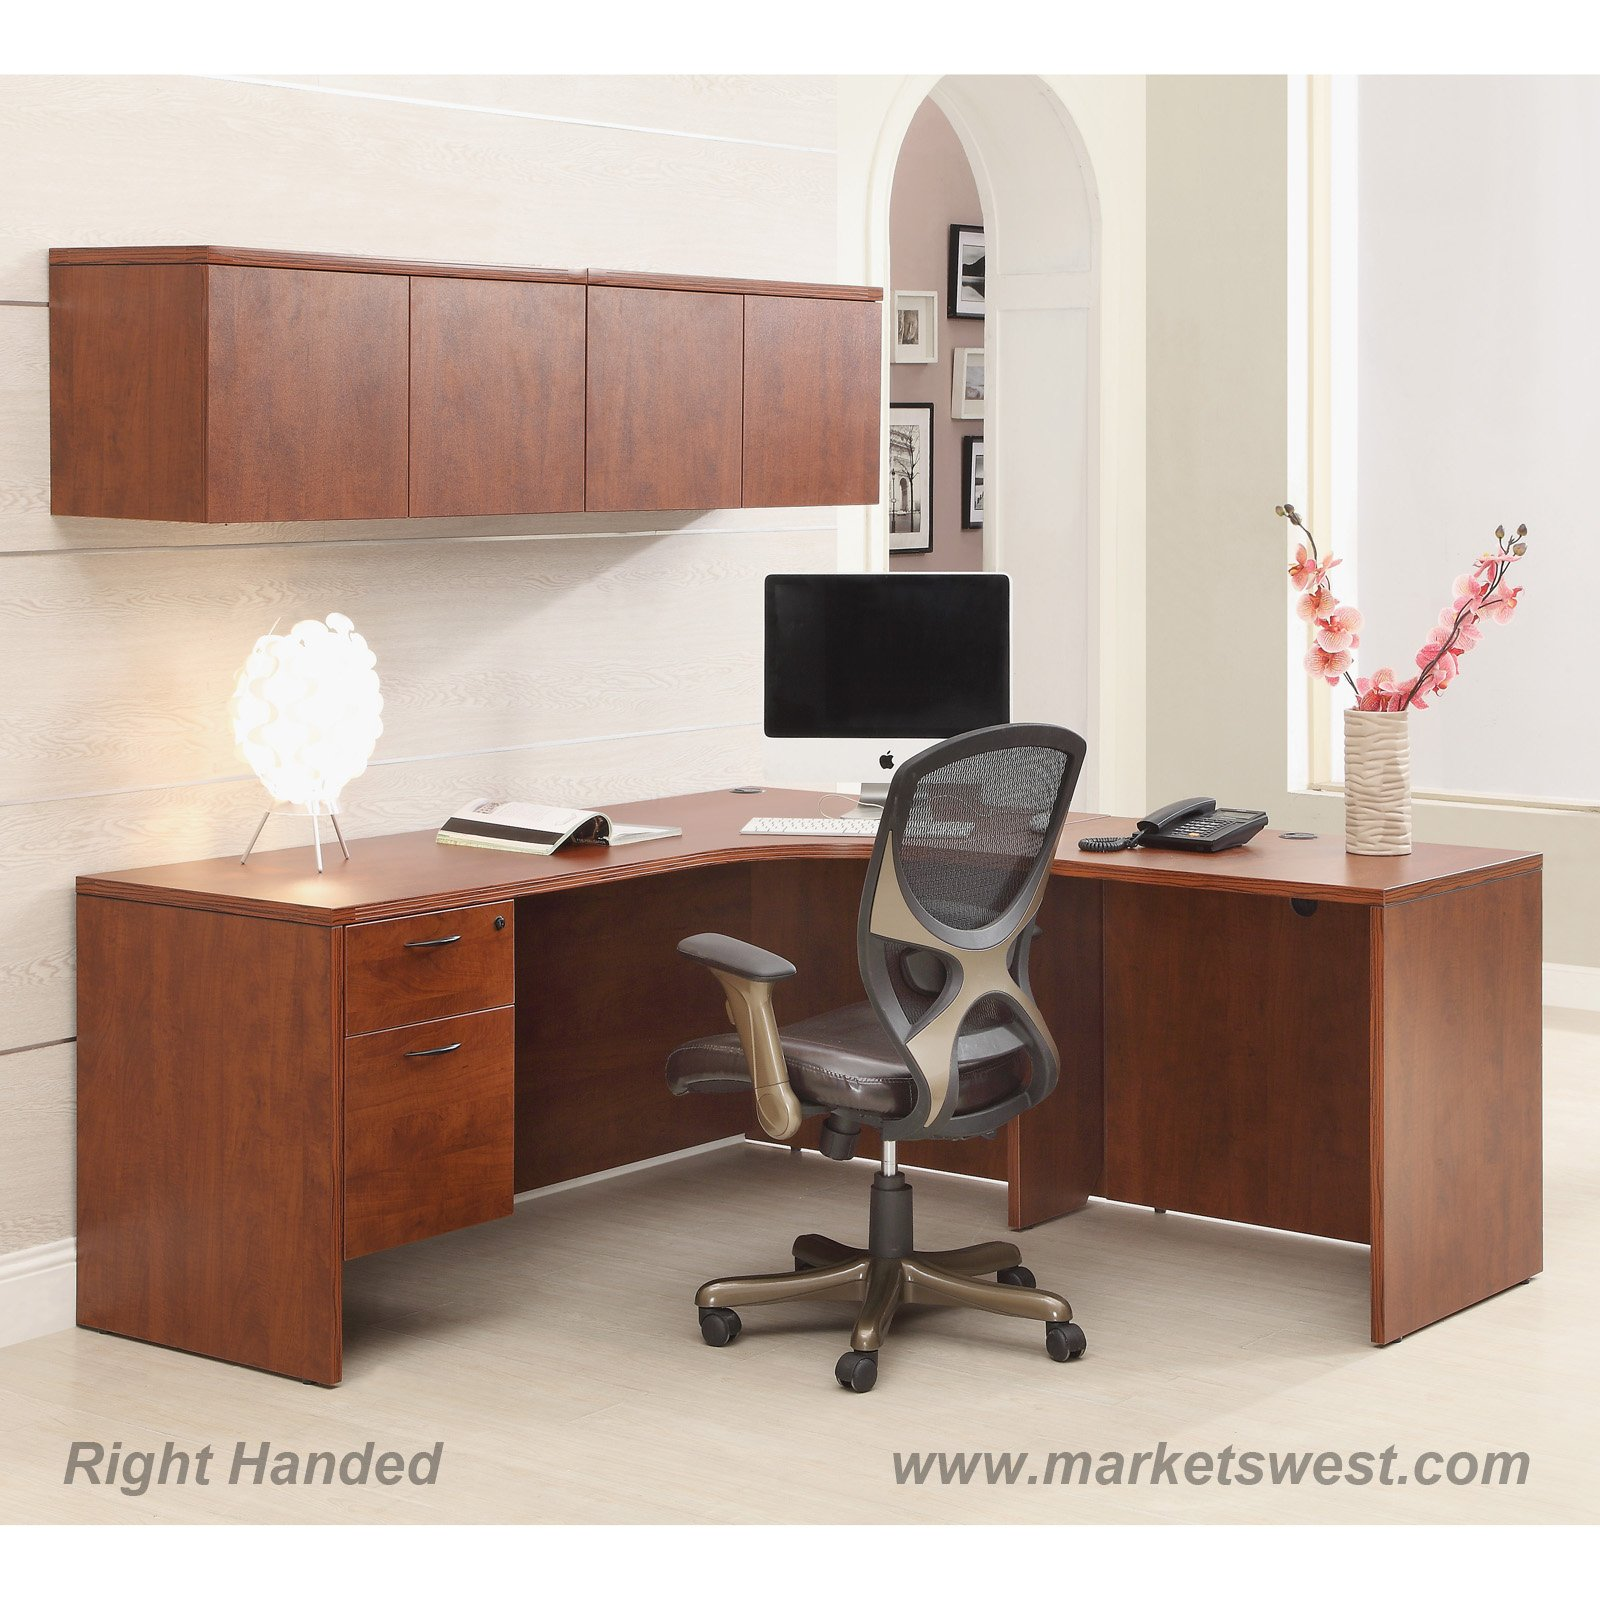 Cherry File Cabinets L Shape Desk 72x72 With Computer Corner Wall Mount Cabinets